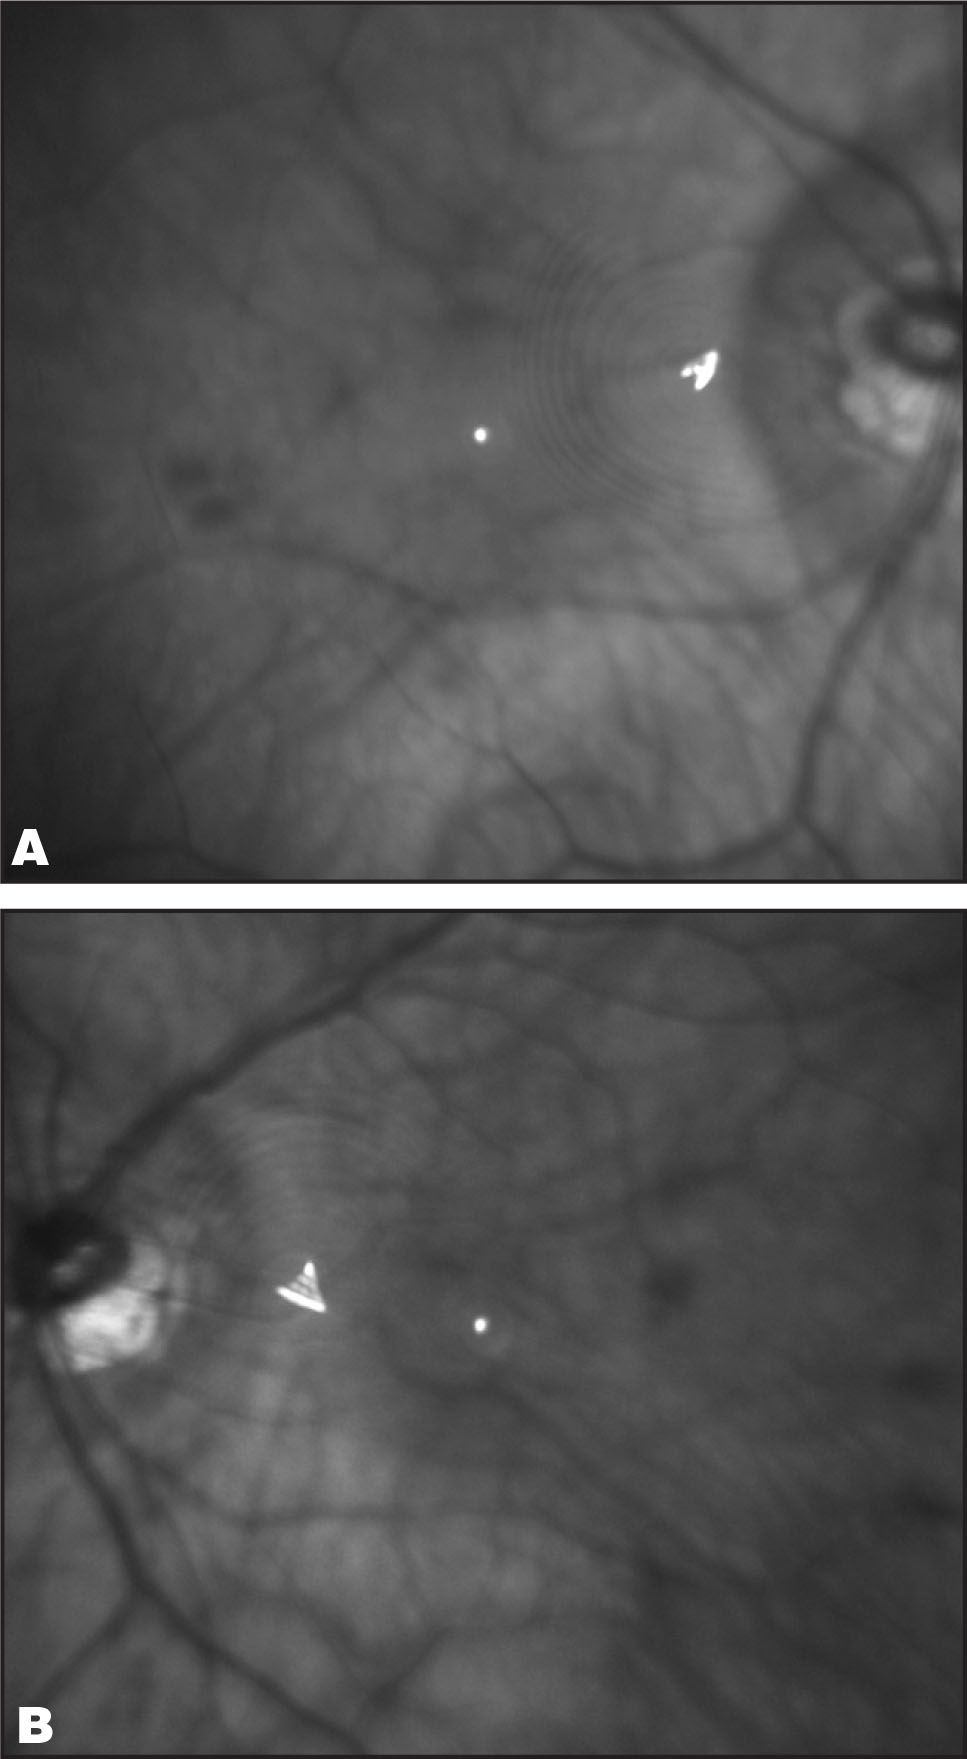 Monochromatic Infrared (820-nm) 30° Scanning Laser Ophthalmoscope Images Show a Prominent Concentric Ring Artifact Centrally in the Patient's (A) Right and (B) Left Retinas. The Diffractive Optical Element on the Anterior Surface of the ReSTOR Intraocular Lens (SN60D3; Alcon Laboratories, Inc., Fort Worth, TX) is the Origin for (1) the Scanning Laser Ophthalmoscope Artifact Caused by Optical Interference and (2) the Patient's Dysphotopsia Caused by Optical Projection or Diffraction.